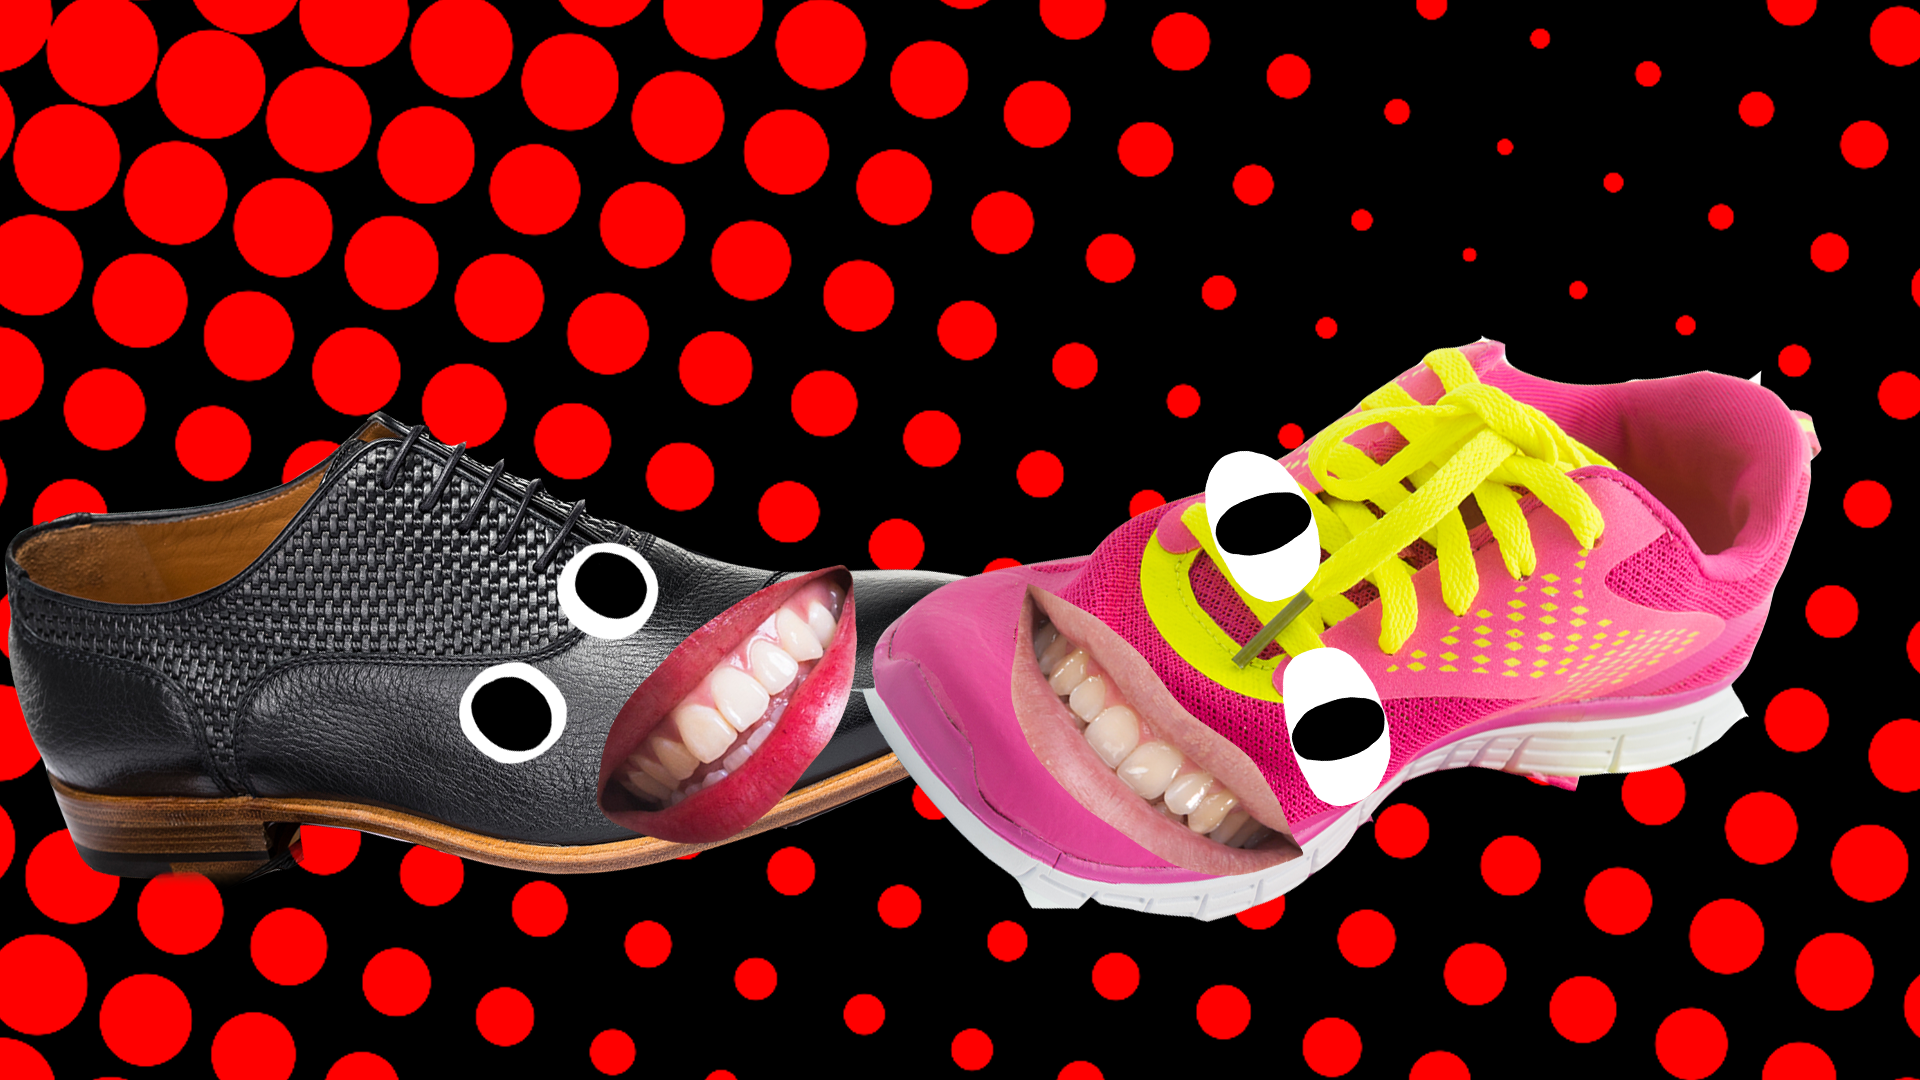 A grinning pink trainer and a smiling black shoe